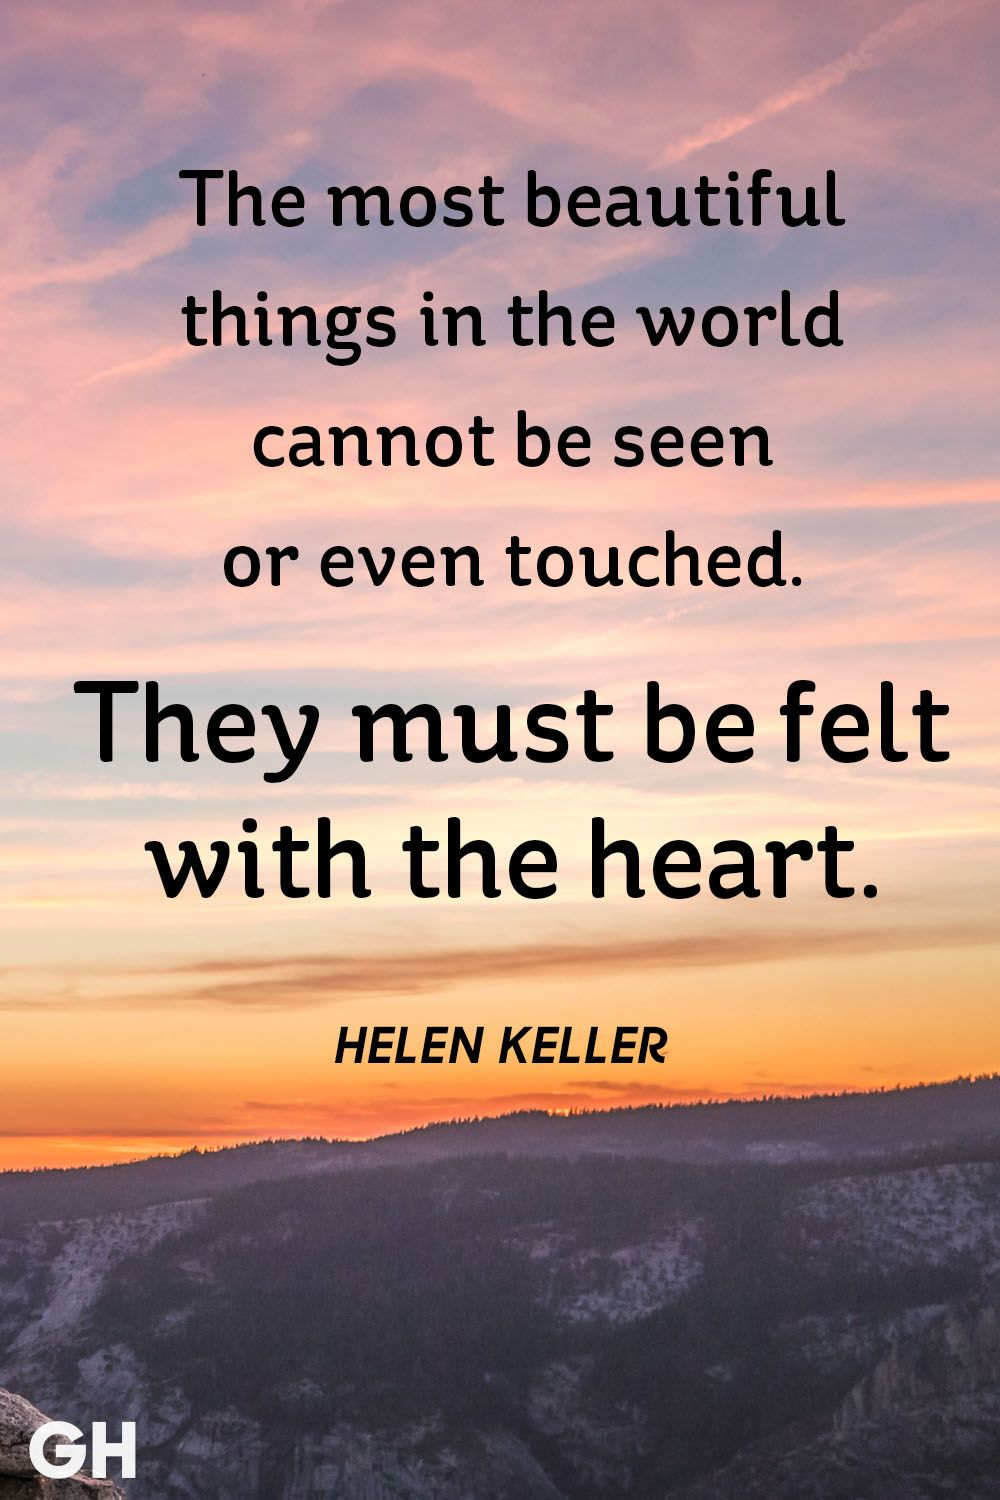 Inspirational Quotes Helen Keller Beautiful Life Quote Goodnet 30 Inspirational Quotes About Life Beautiful Famous Life Quotes